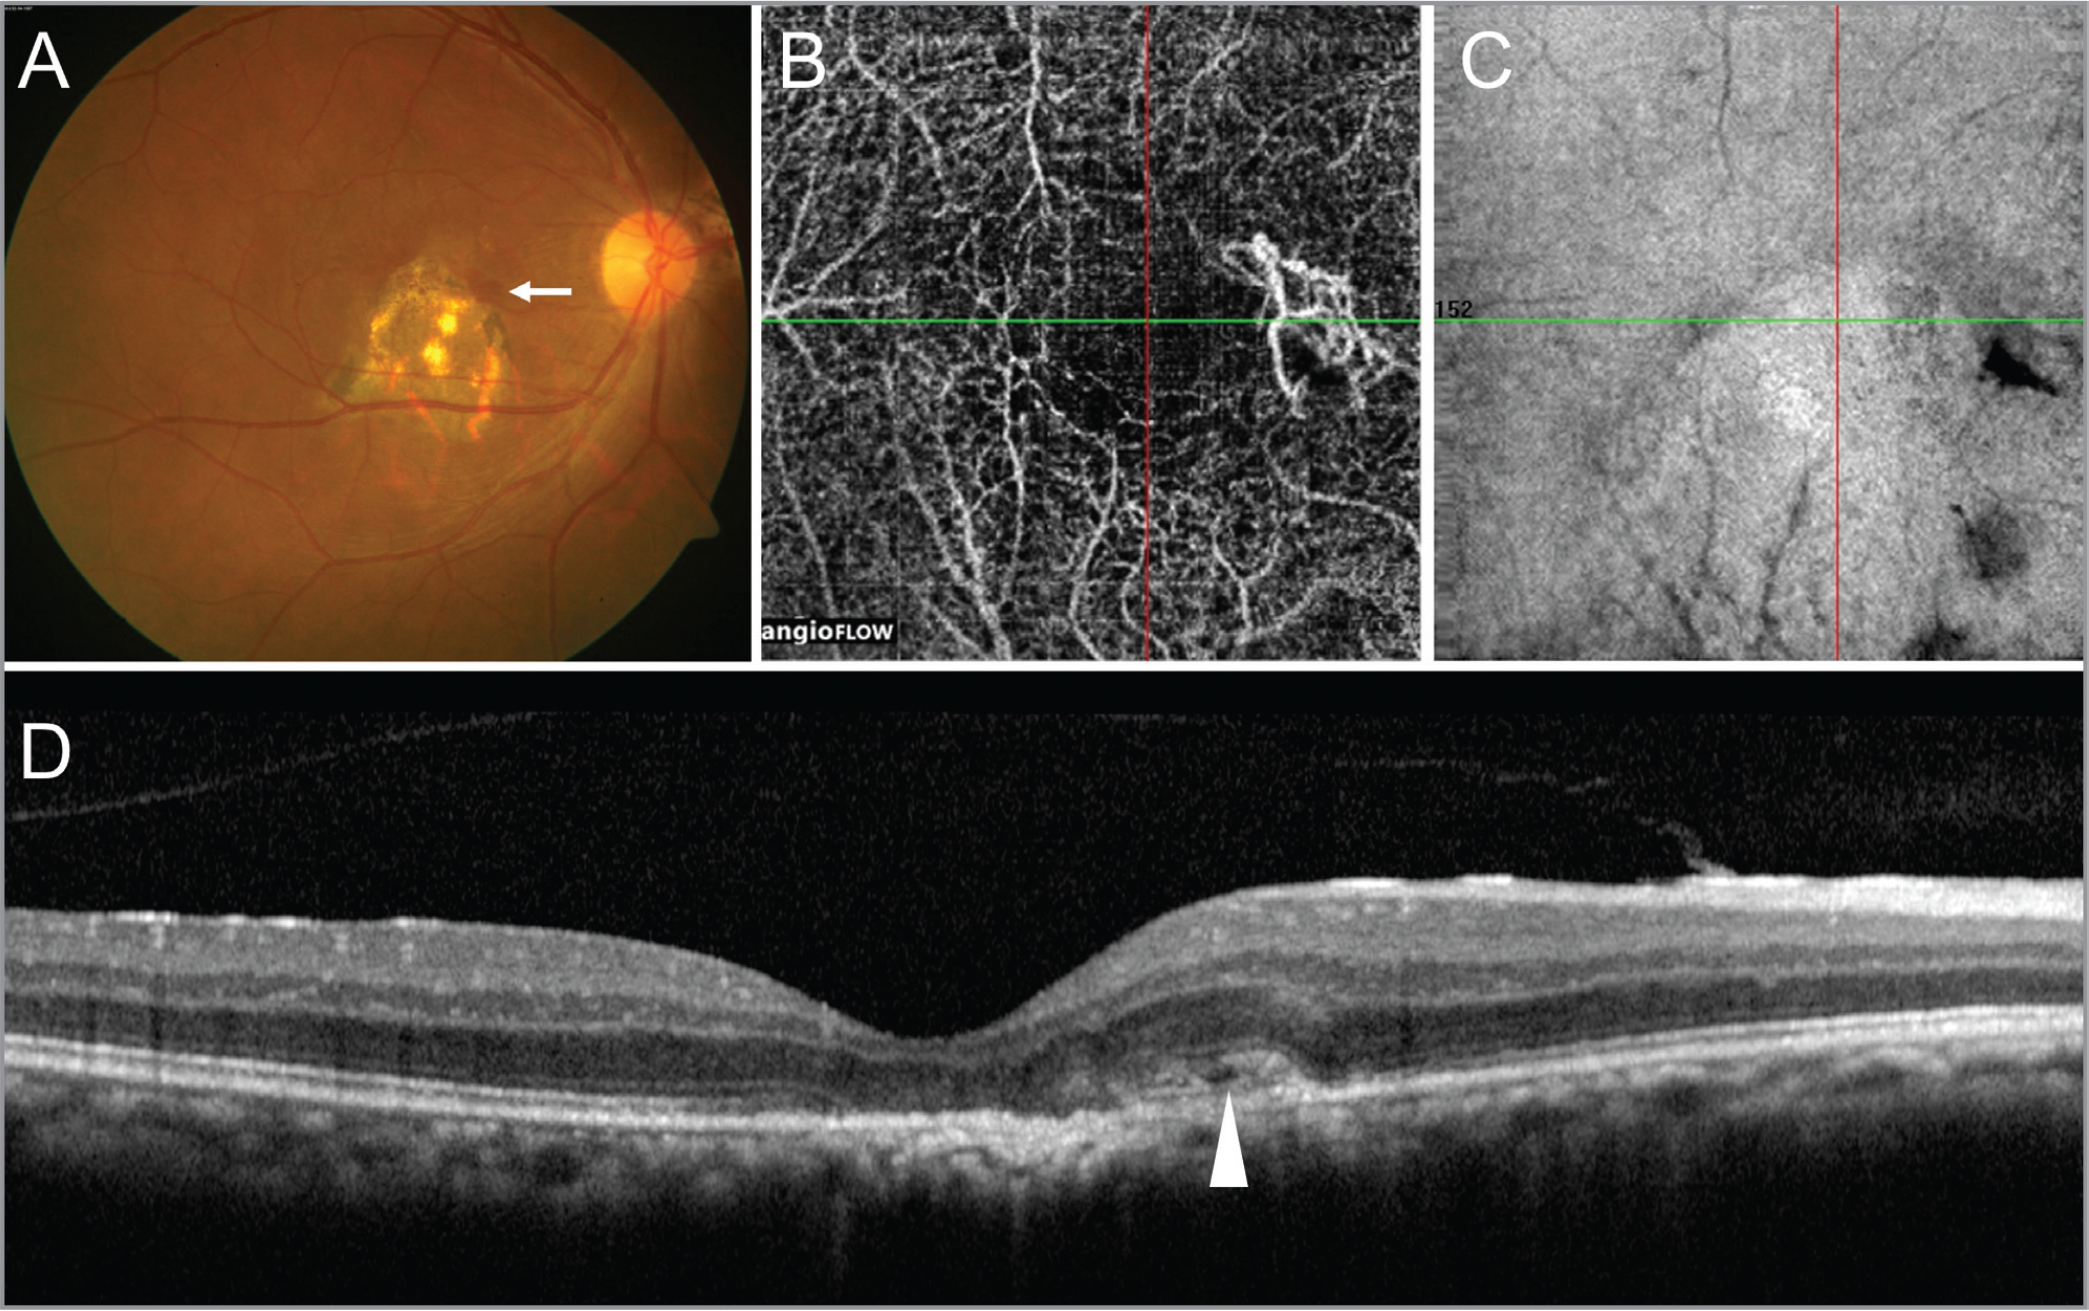 (A) Fundus photograph of the right eye at 7-month follow-up shows a healed pigmented chorioretinal scar at the site of the choroidal granuloma with the presence of a retinal hemorrhage at the edge of the scar (white arrow). Optical coherence tomography angiography (OCTA) en face image (obtained by adjusting the automatic segmentation slab at the choriocapillaris level so that the upper retinal pigment epithelium [RPE] reference offset was −9 μm and the lower RPE reference offset was 19 μm) reveals a network of vessels that stands out from the rest of the projection artefacts, suggestive of choroidal neovascularization (CNV). (C) The corresponding structural en face OCT image does not show any signal transmission defects. (D) OCT line scan passing through this area shows the disruption of the outer retinal layers, including the external limiting membrane and ellipsoid zone in the subfoveal region, with adjacent outer retinal hyperreflectivity suggestive of a type 2 CNV.